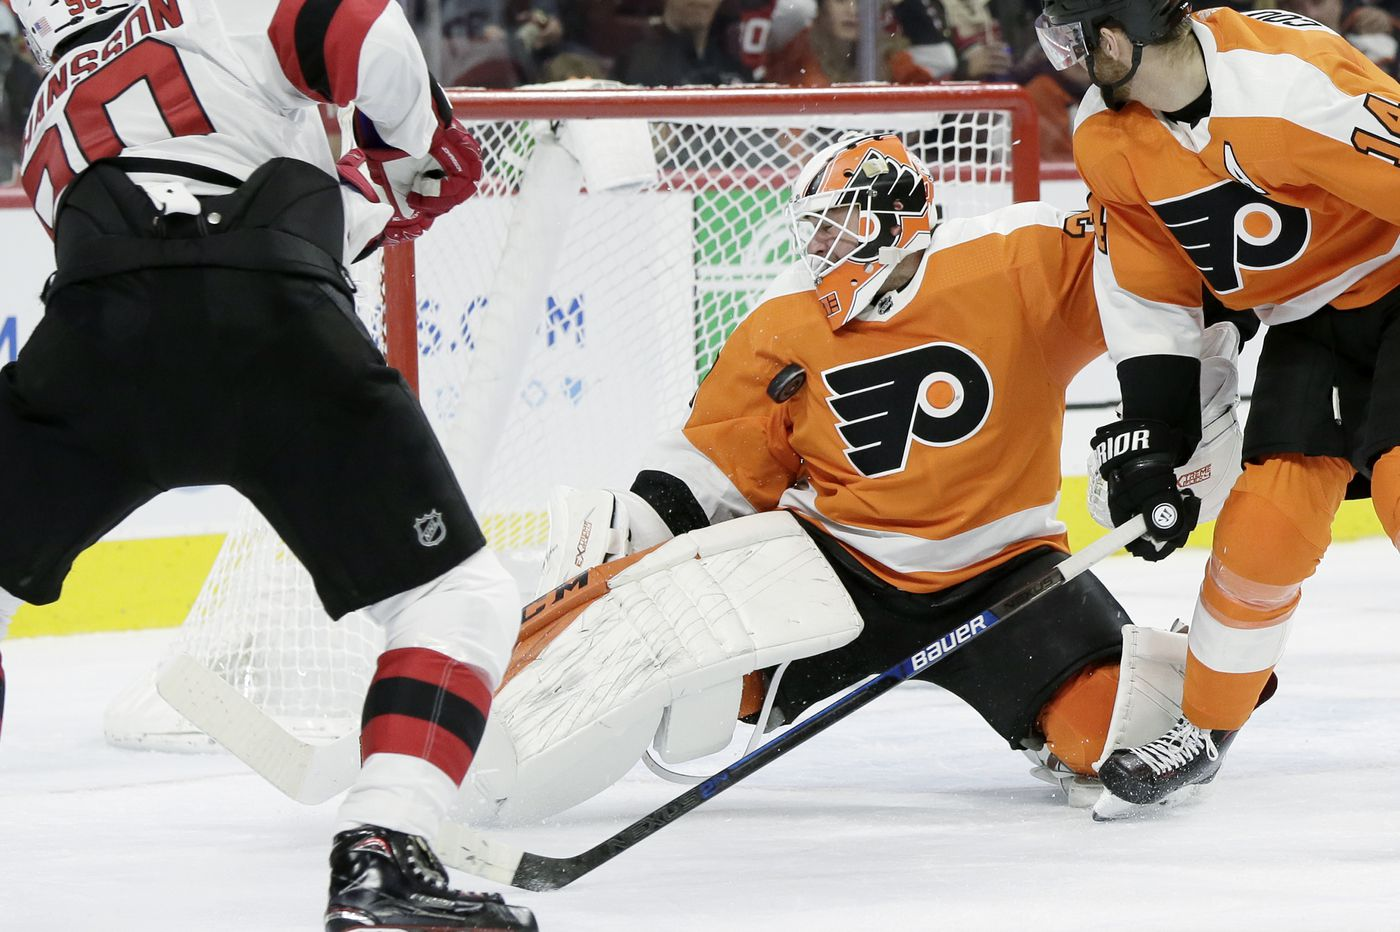 Flyers goalie Brian Elliott almost ready, but he may go to Phantoms for brief stint